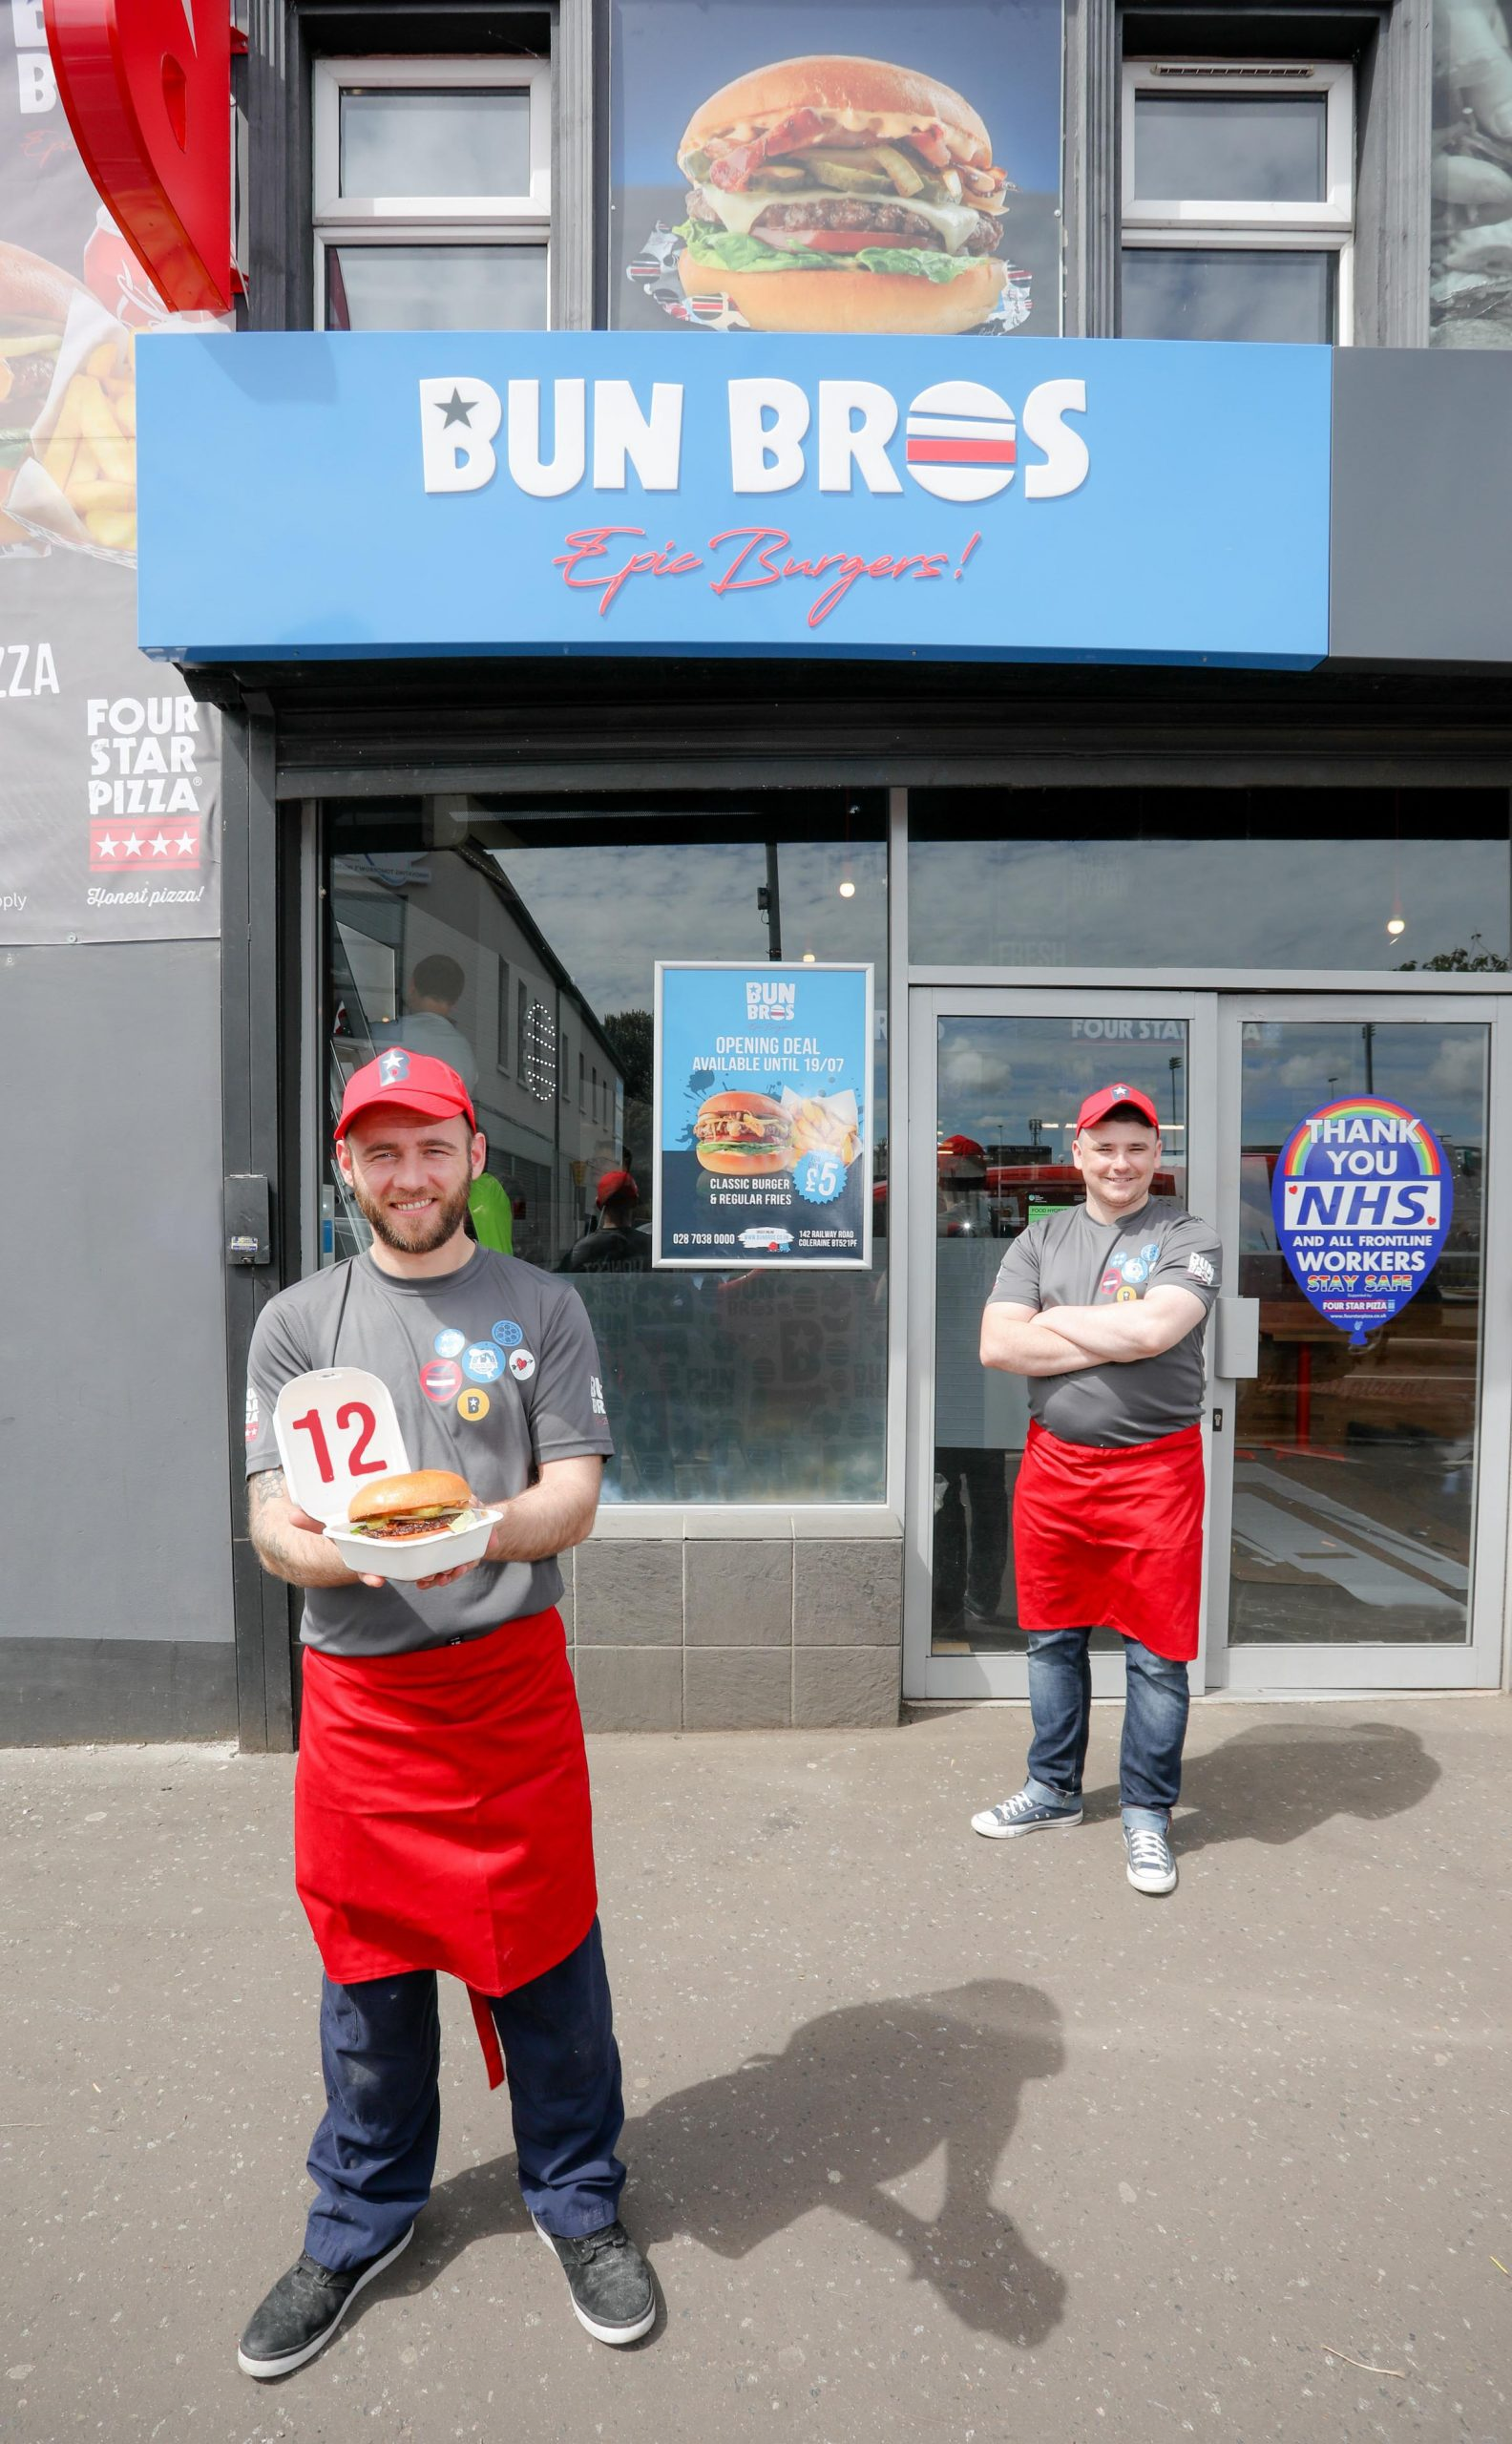 NEW burger chain Bun Bros has opened its first ever store in Northern Ireland, creating 12 new jobs in the Coleraine area after a £50,000 investment. The store will offer burger lovers a vast array of made-to-order burgers produced using only locally sourced Irish Beef. Pictured at the launch are (L-R) Store Manager Ciaran Magee and his colleague Lee Biggart. For more information on Bun Bros or to order, go to https://bunbros.co.uk or check the company out on social media at https://www.facebook.com/BunBrosColeraine Photo by Philip Magowan / Press Eye